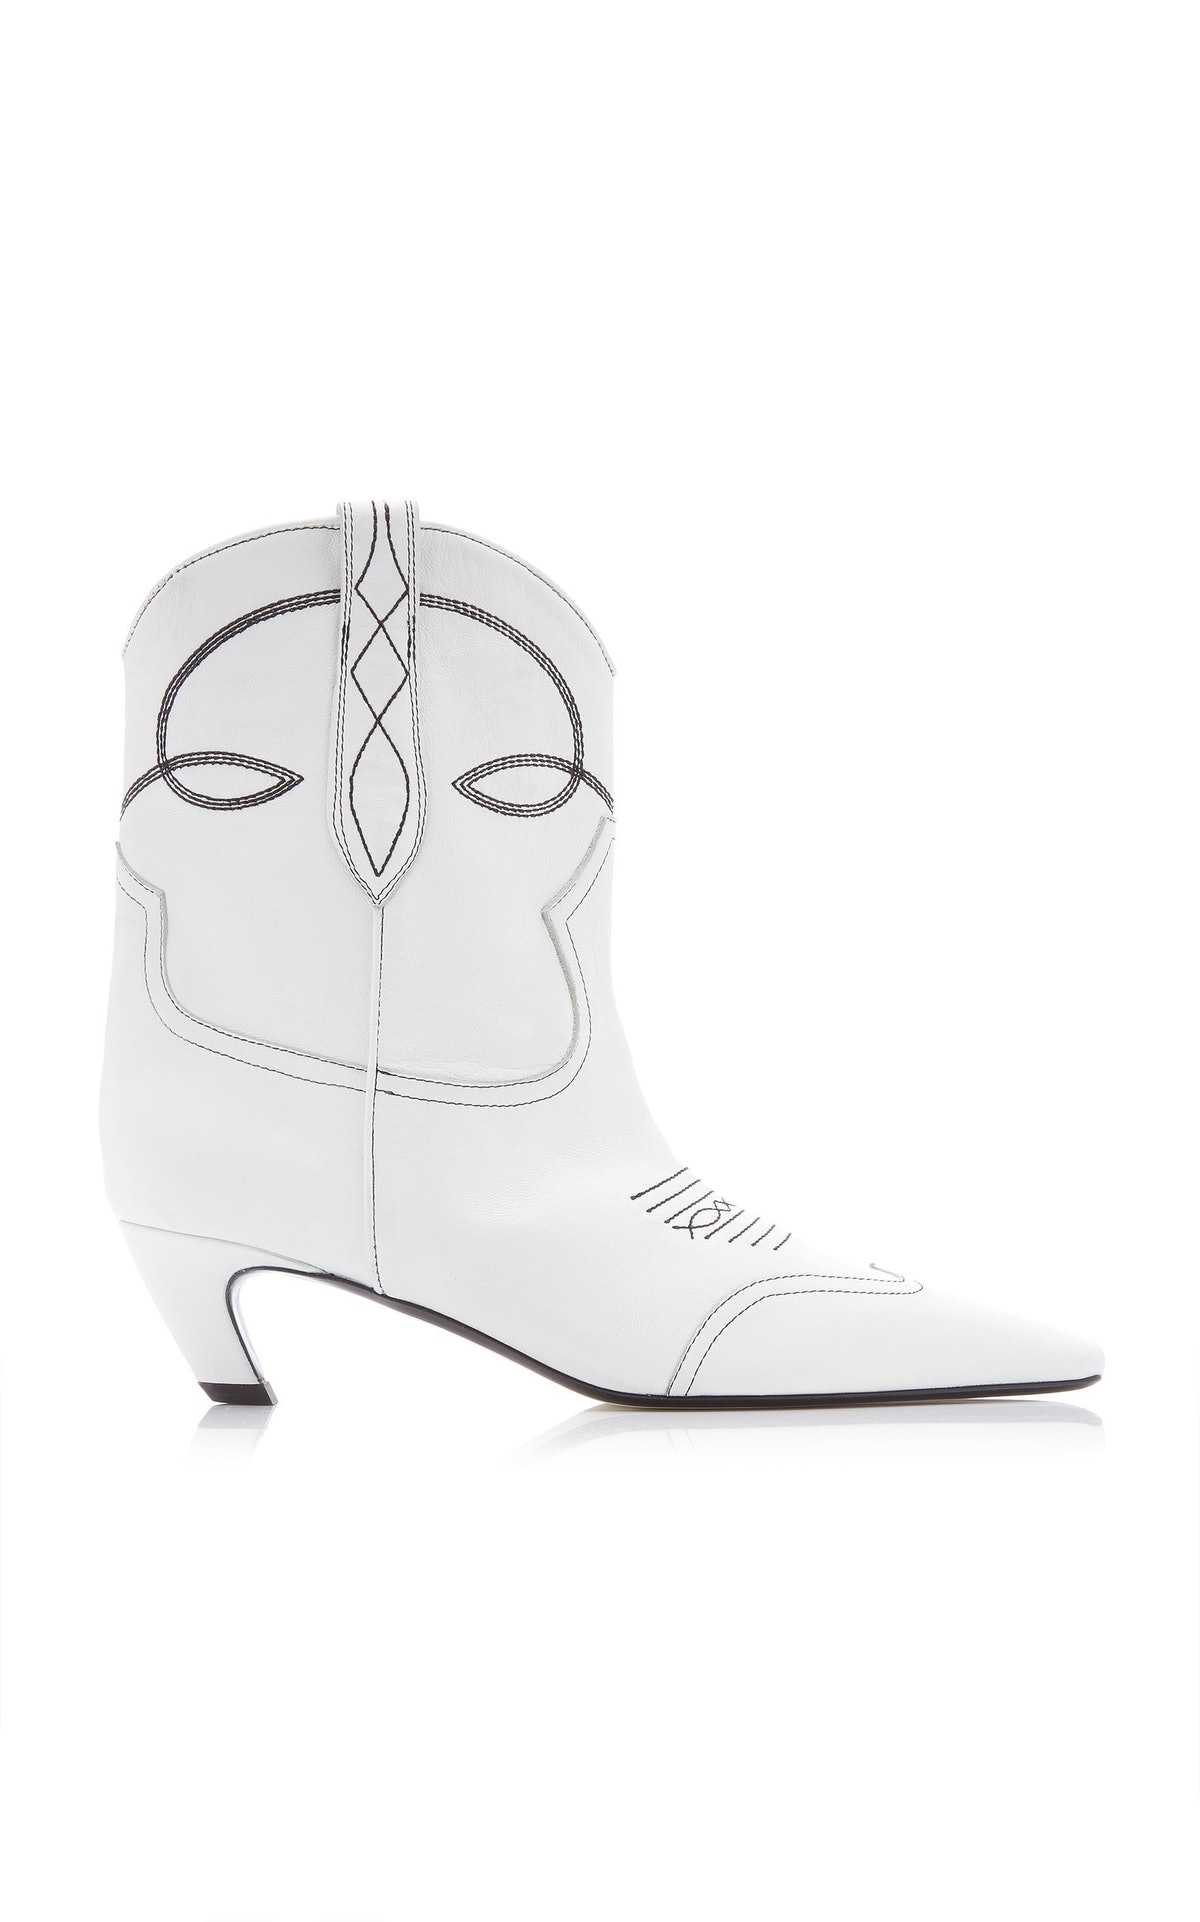 Dallas white leather ankle boots from Khaite, available to shop on Moda Operandi.